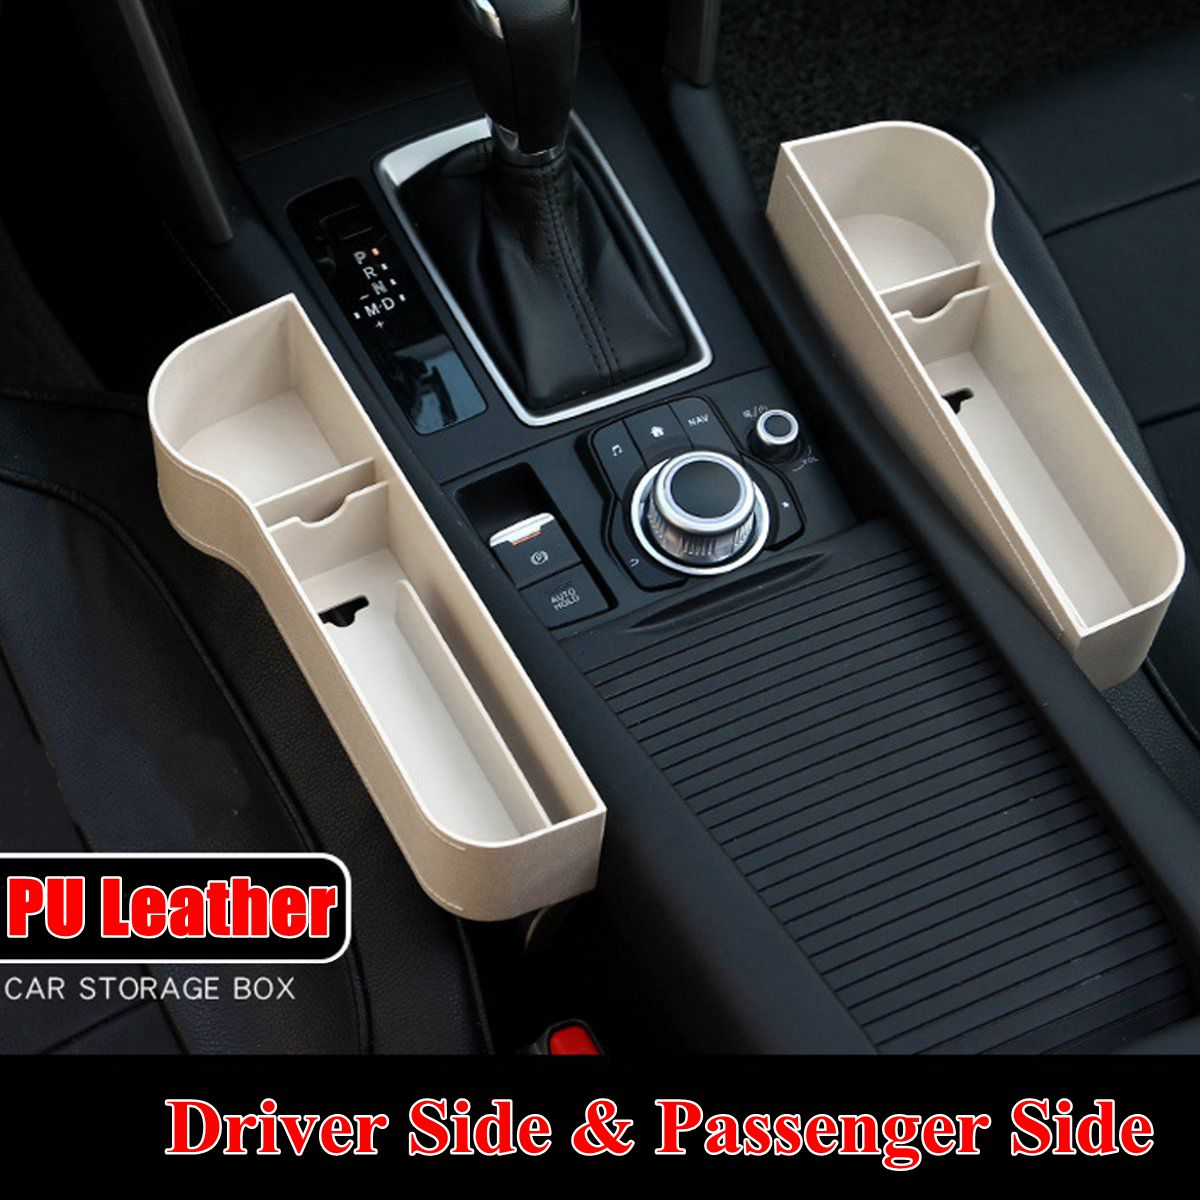 Universal Pair Penger Driver Side Car Seat Gap Storage Box For Pocket Organizer Phone Holders Black Beige Red Brown In Stowing Tidying From Automobiles